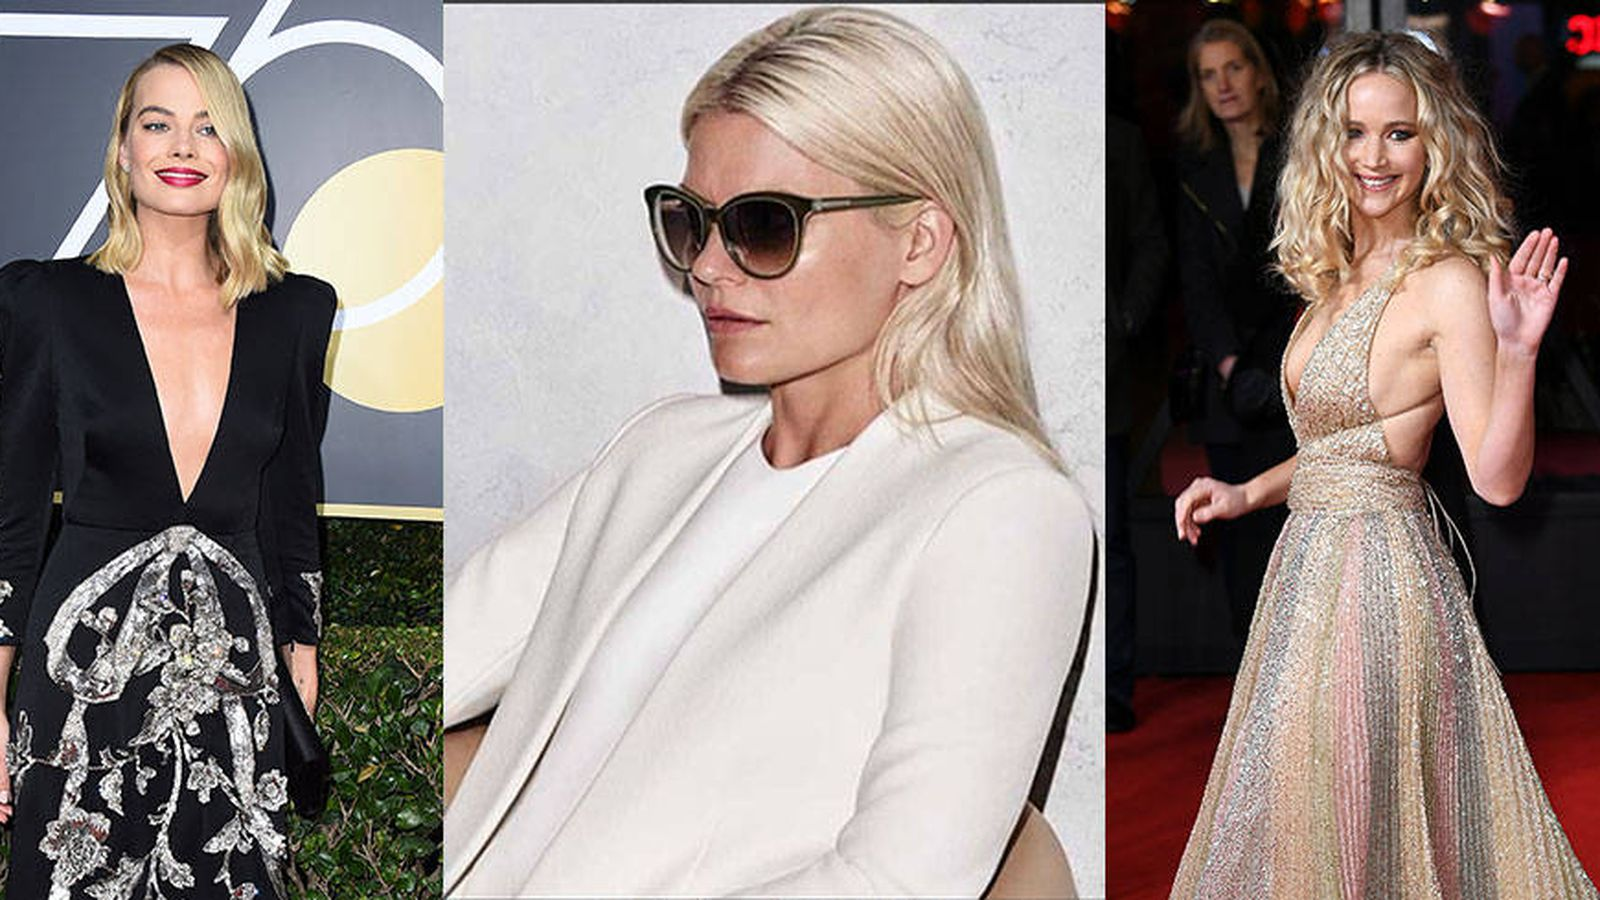 Foto: Margot Robbie, la estilista Kate Young y Jennifer Lawrence. (Fotos Instagram y Gtres)